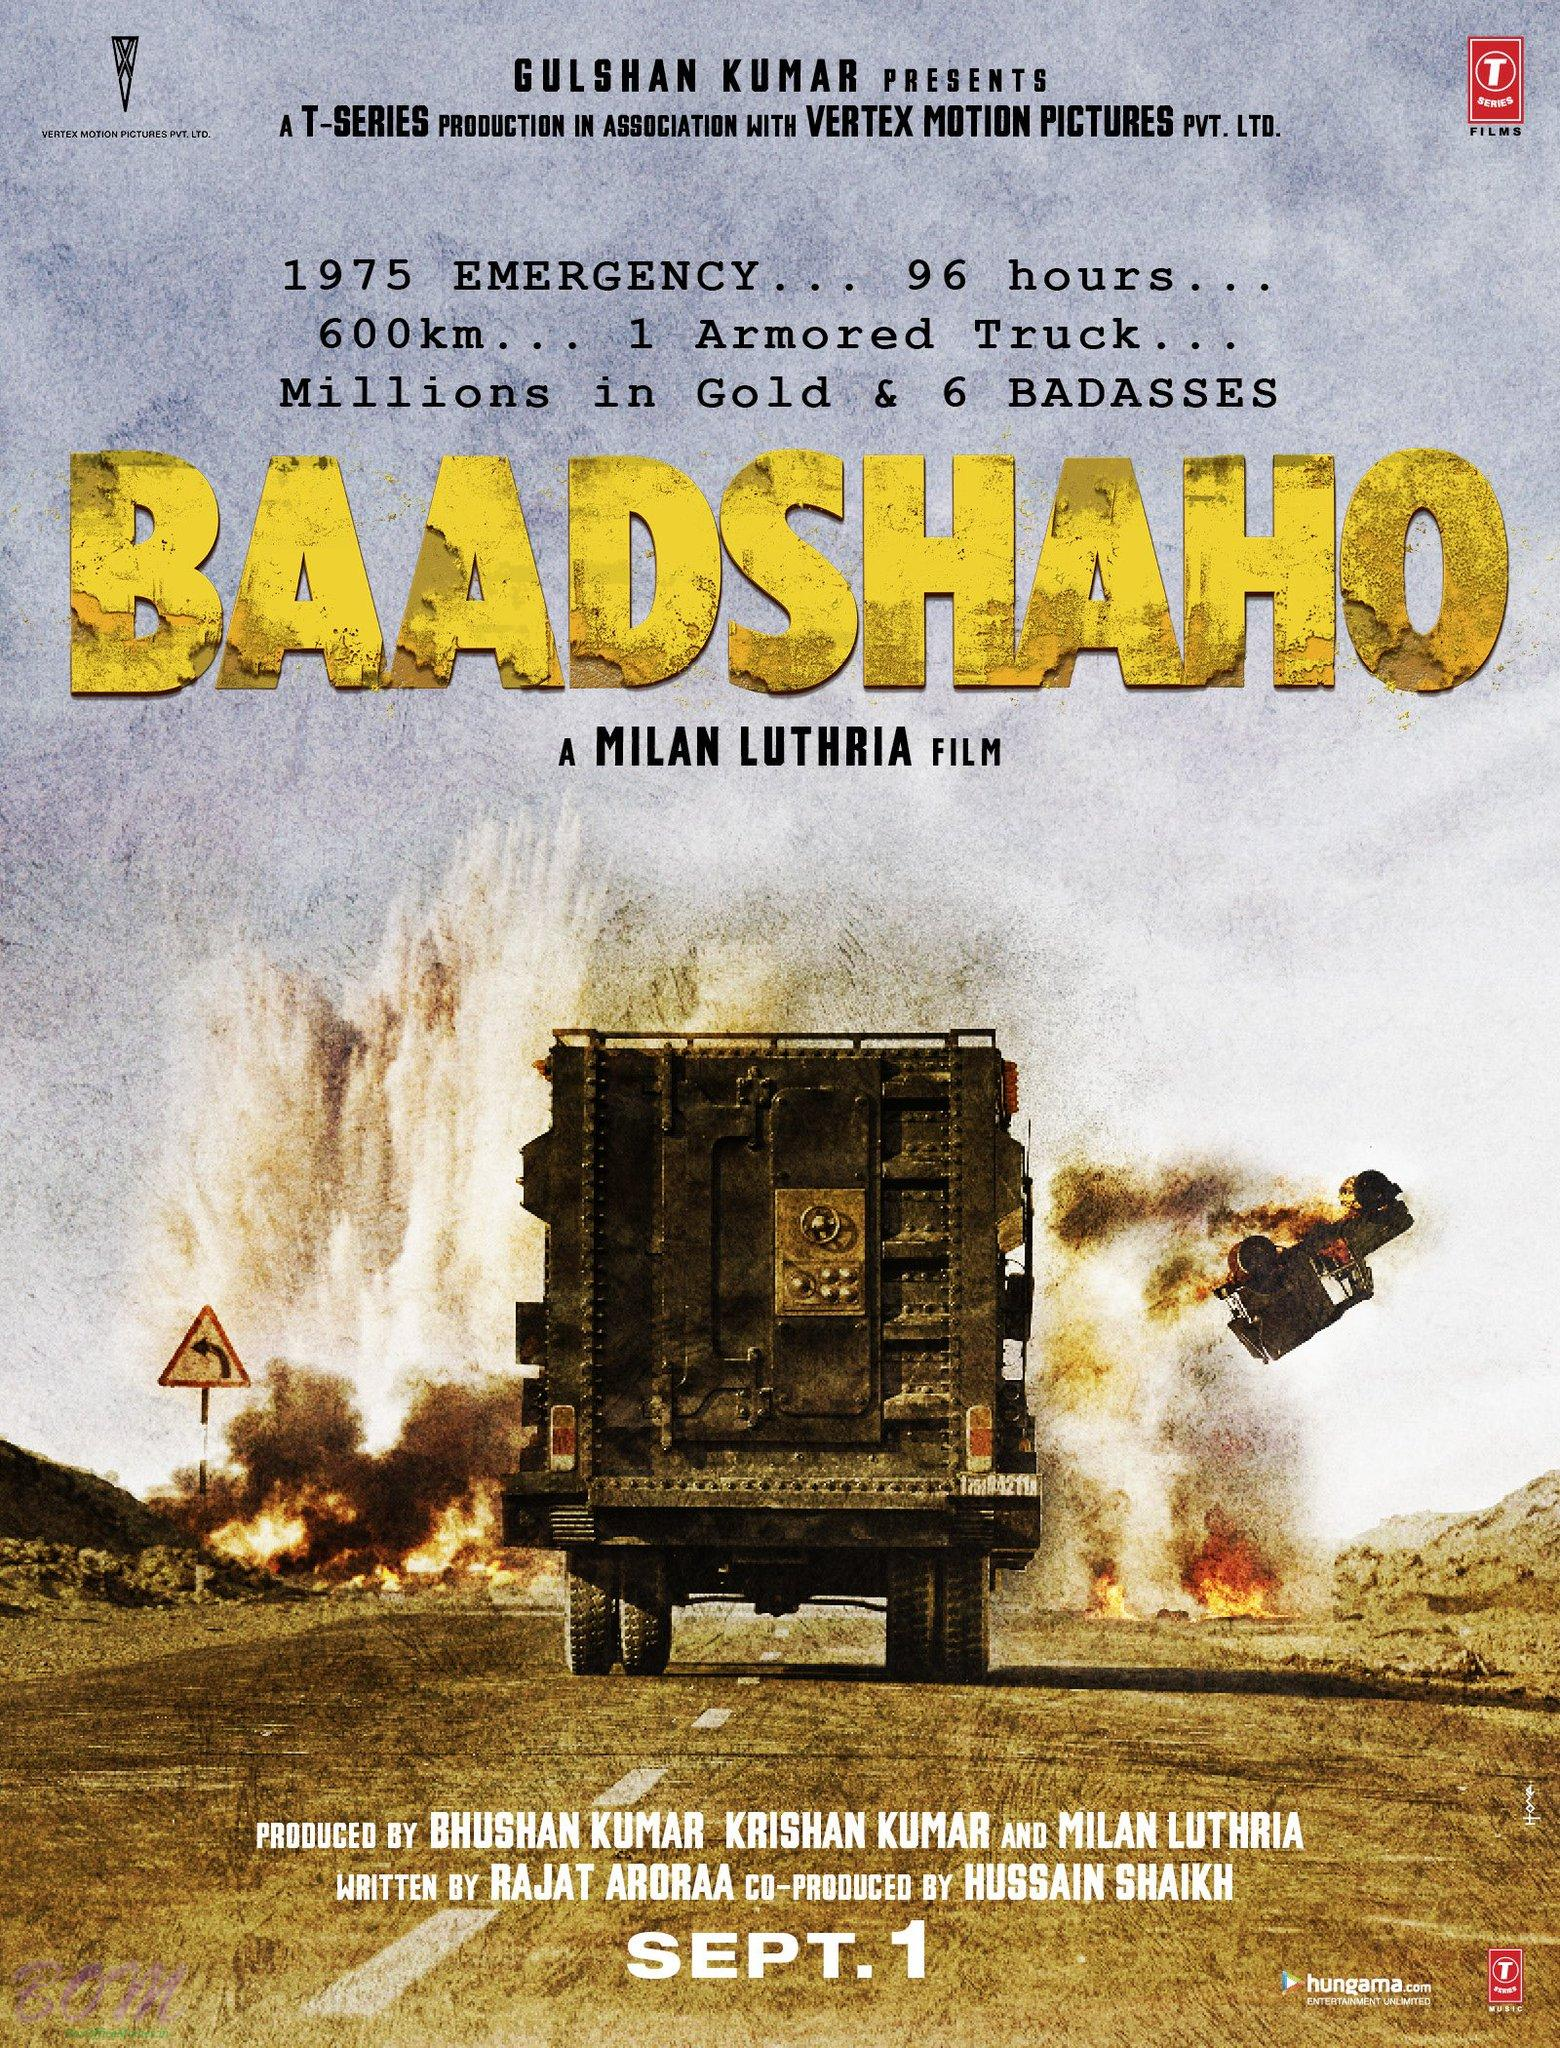 BAADSHAHO movie first look poster